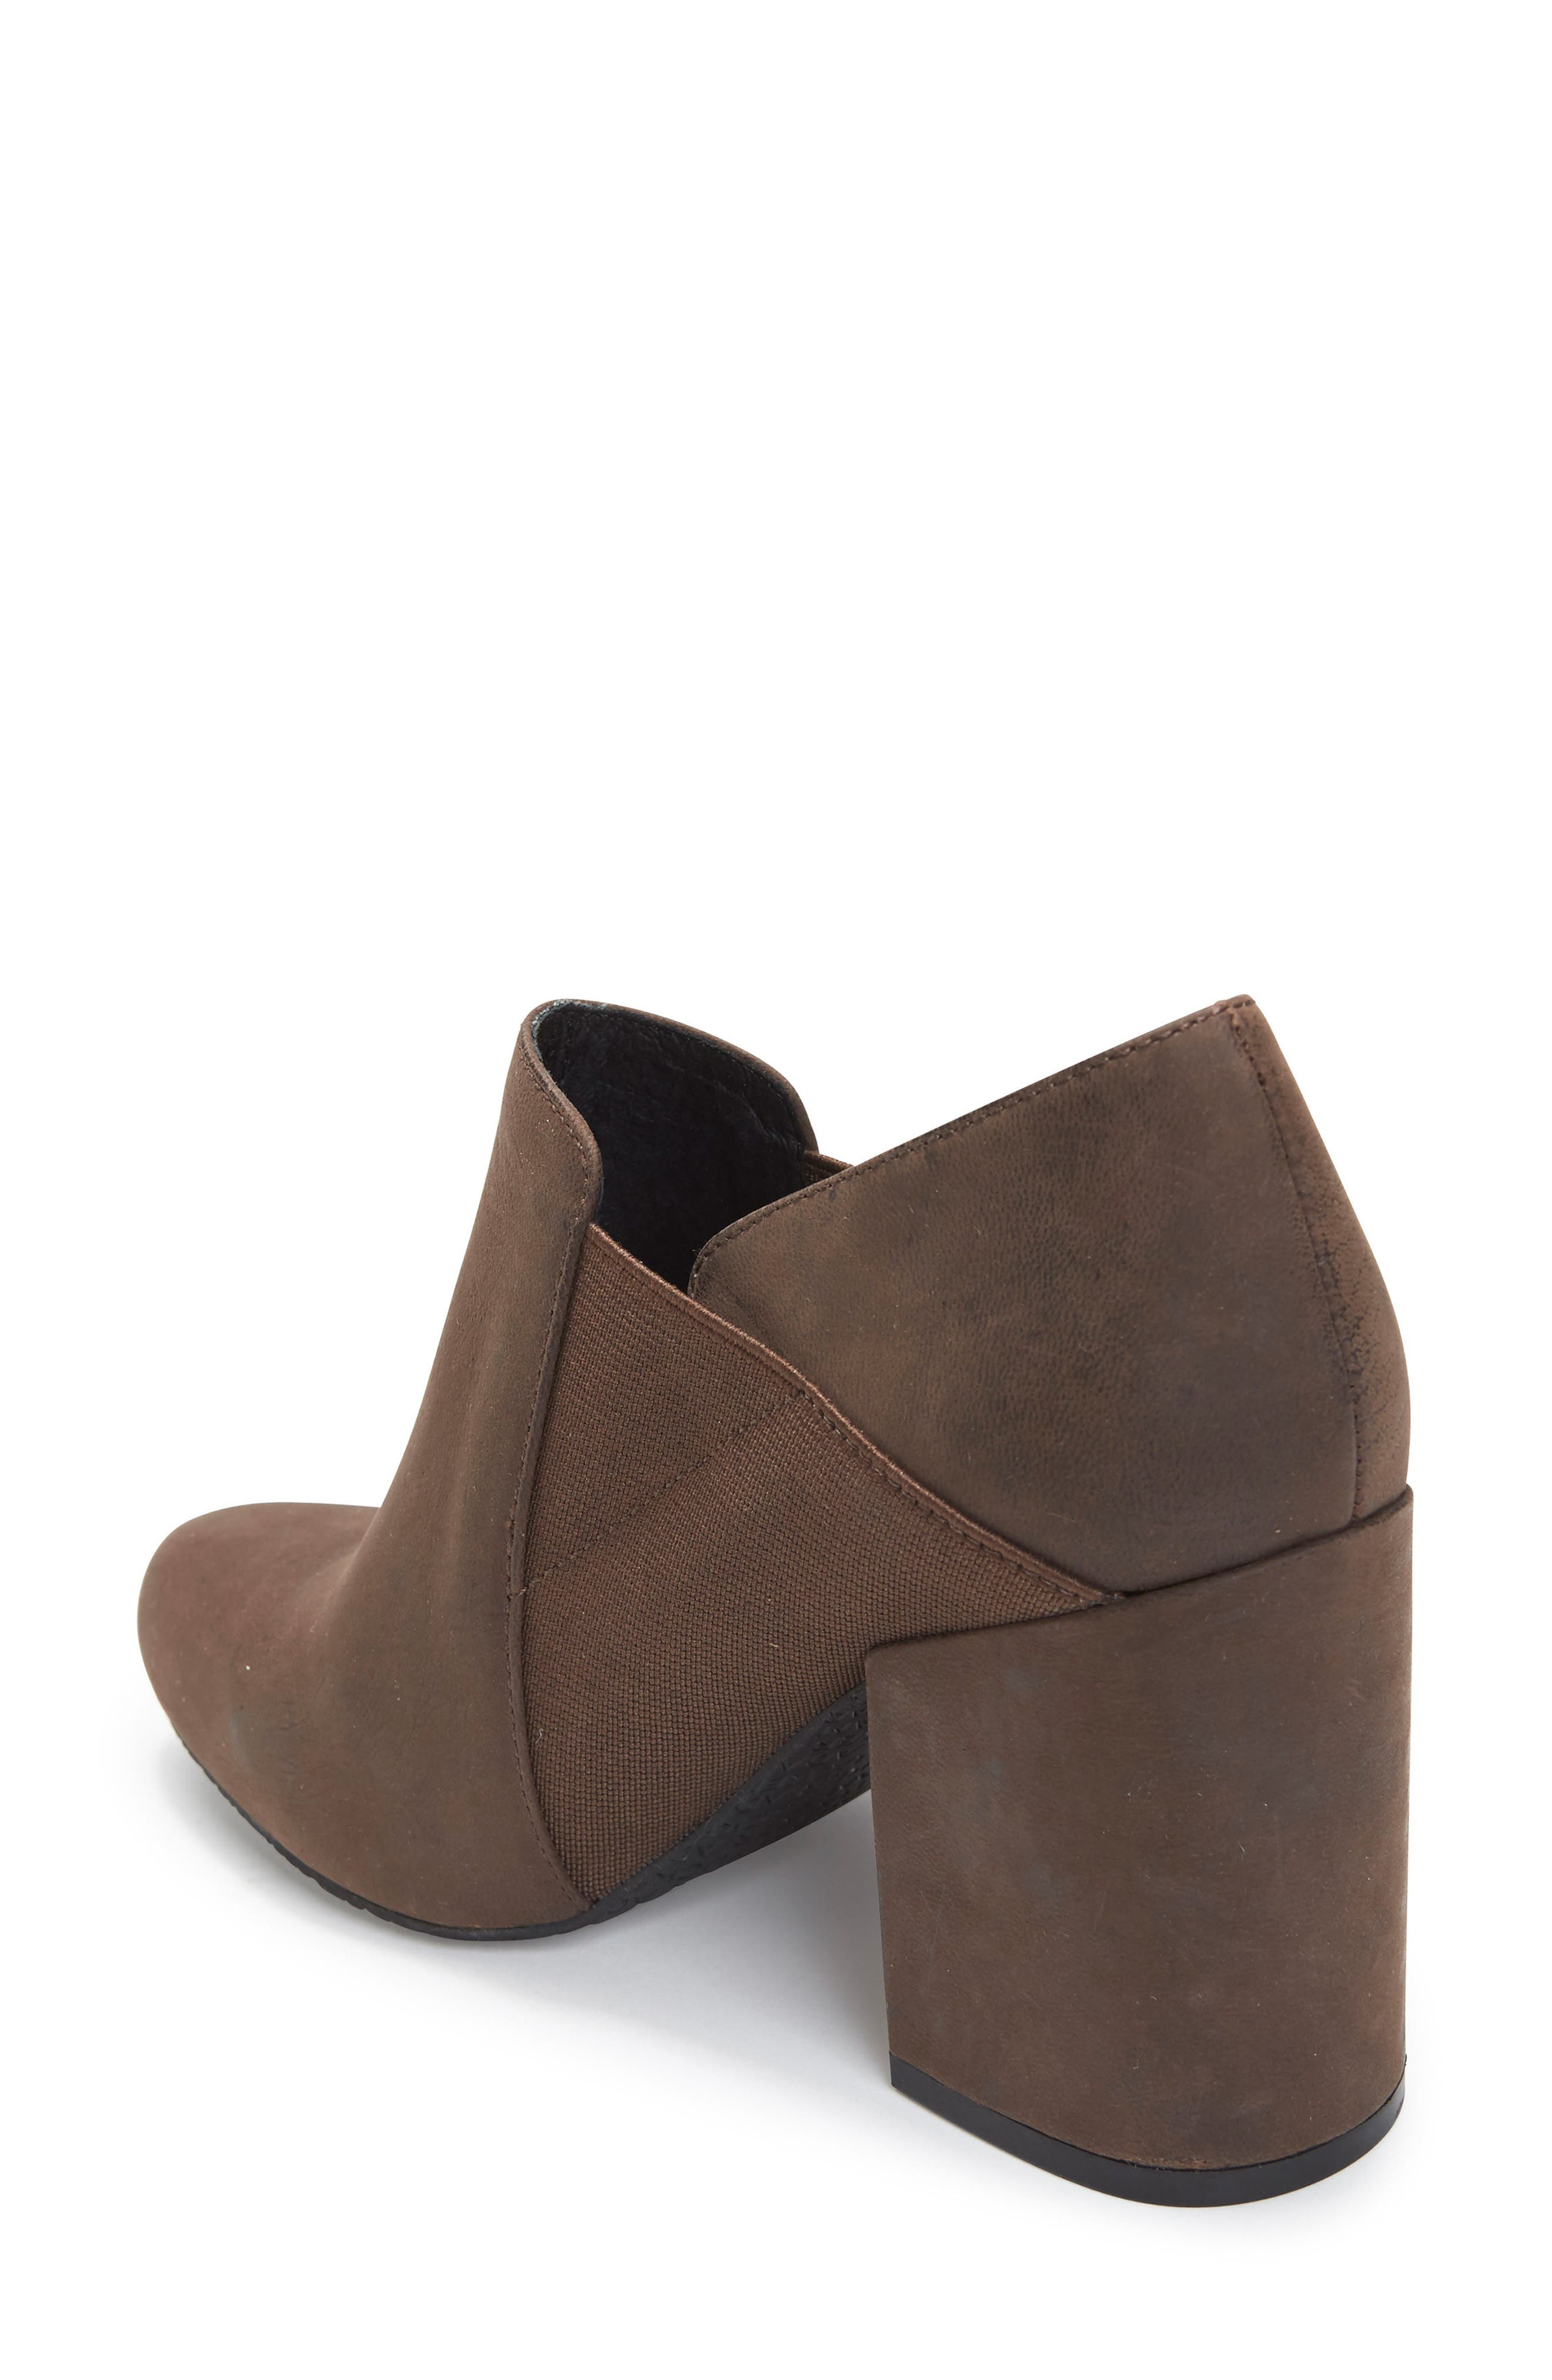 Zayna Bootie,                             Alternate thumbnail 2, color,                             Cuban Brown Leather